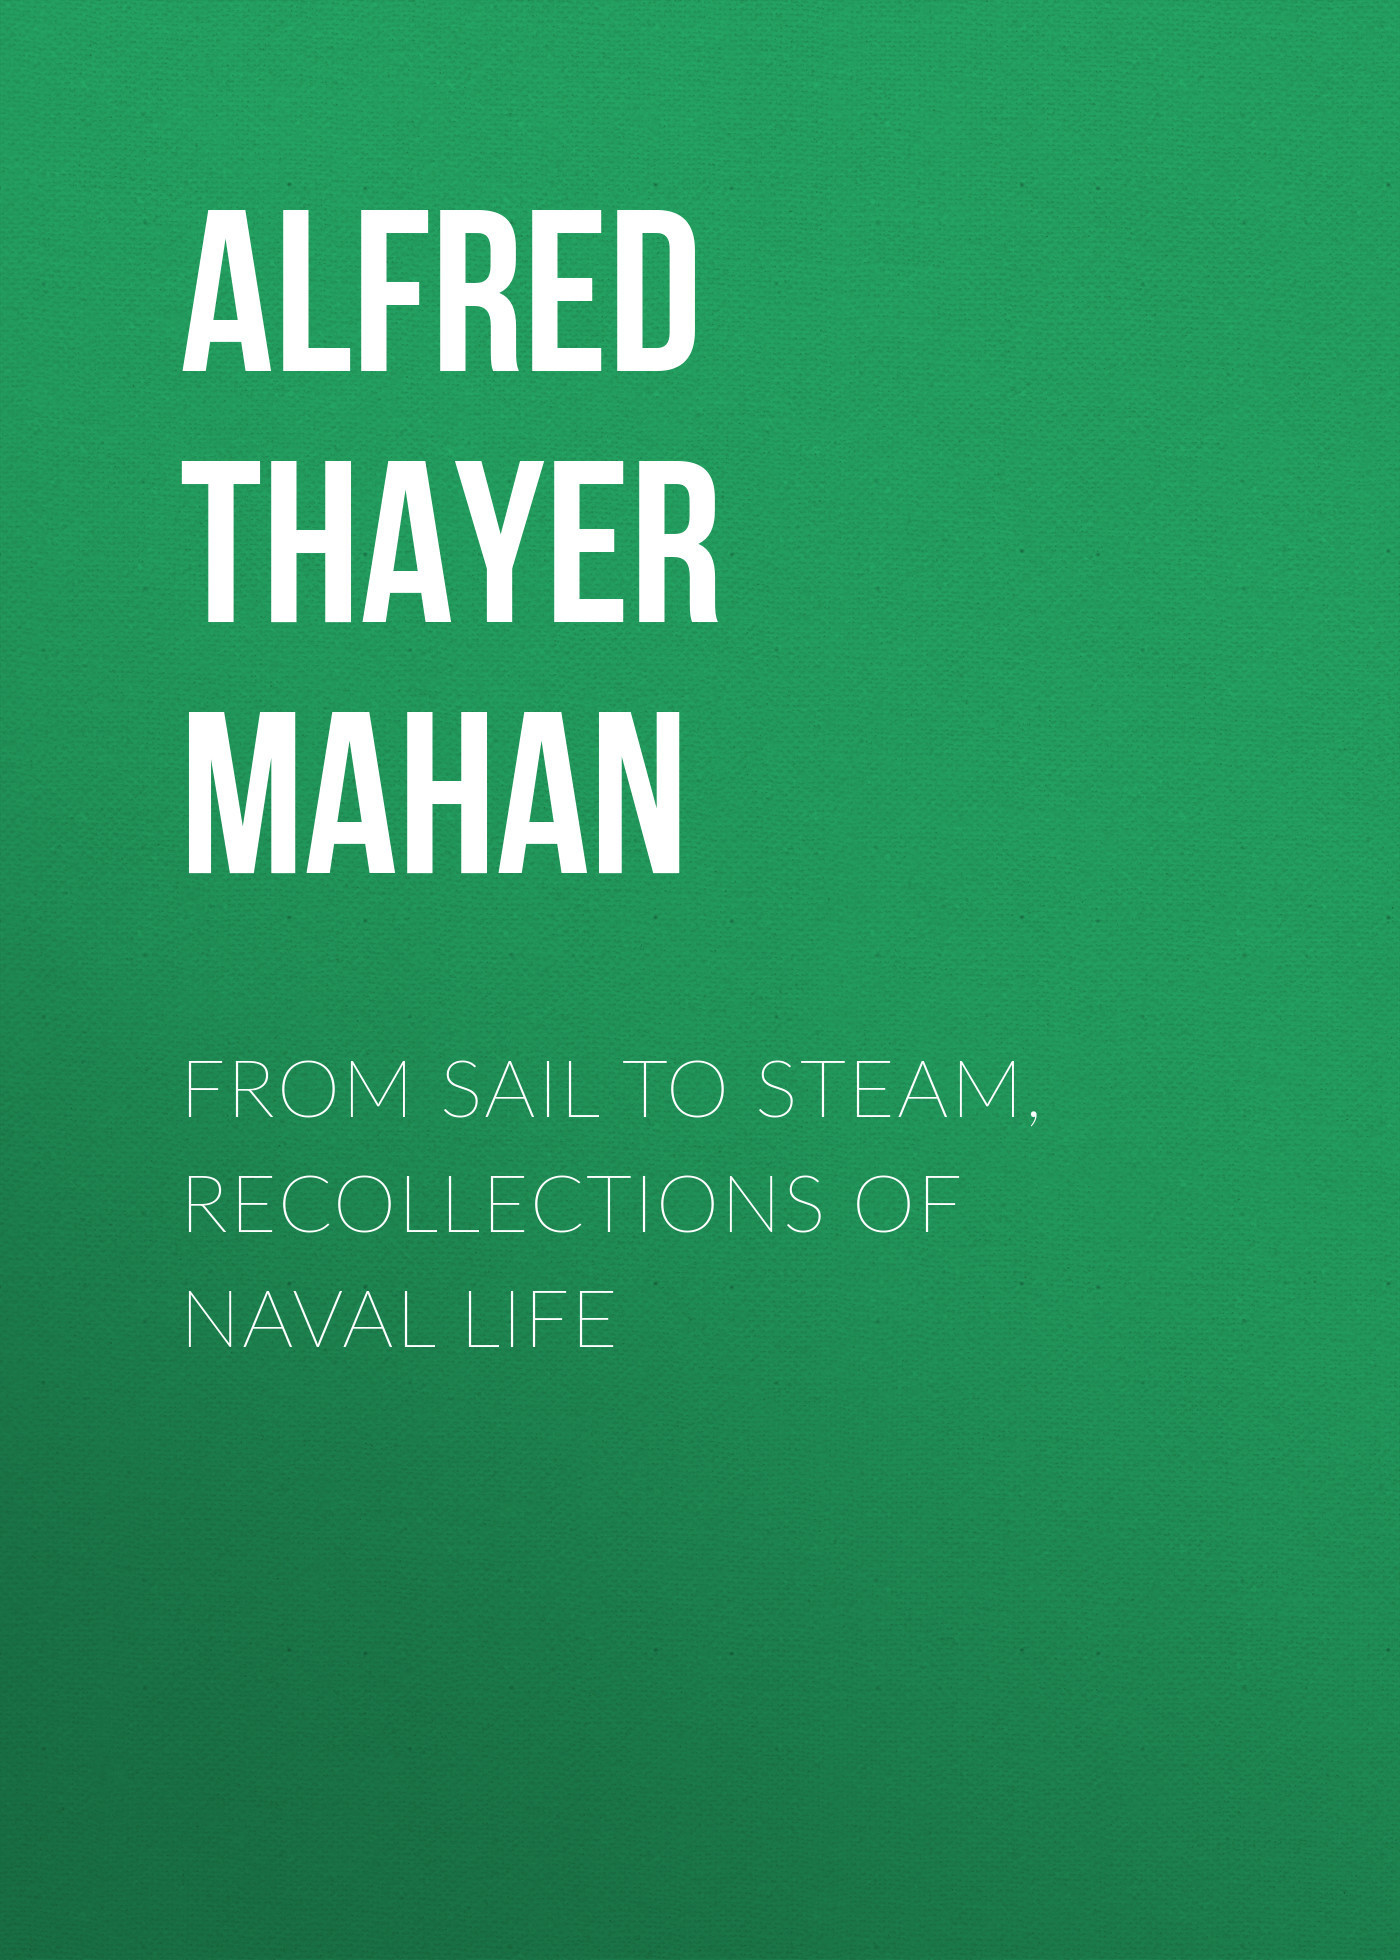 Alfred Thayer Mahan From Sail to Steam, Recollections of Naval Life alfred thayer mahan the influence of sea power upon history 1660 1783